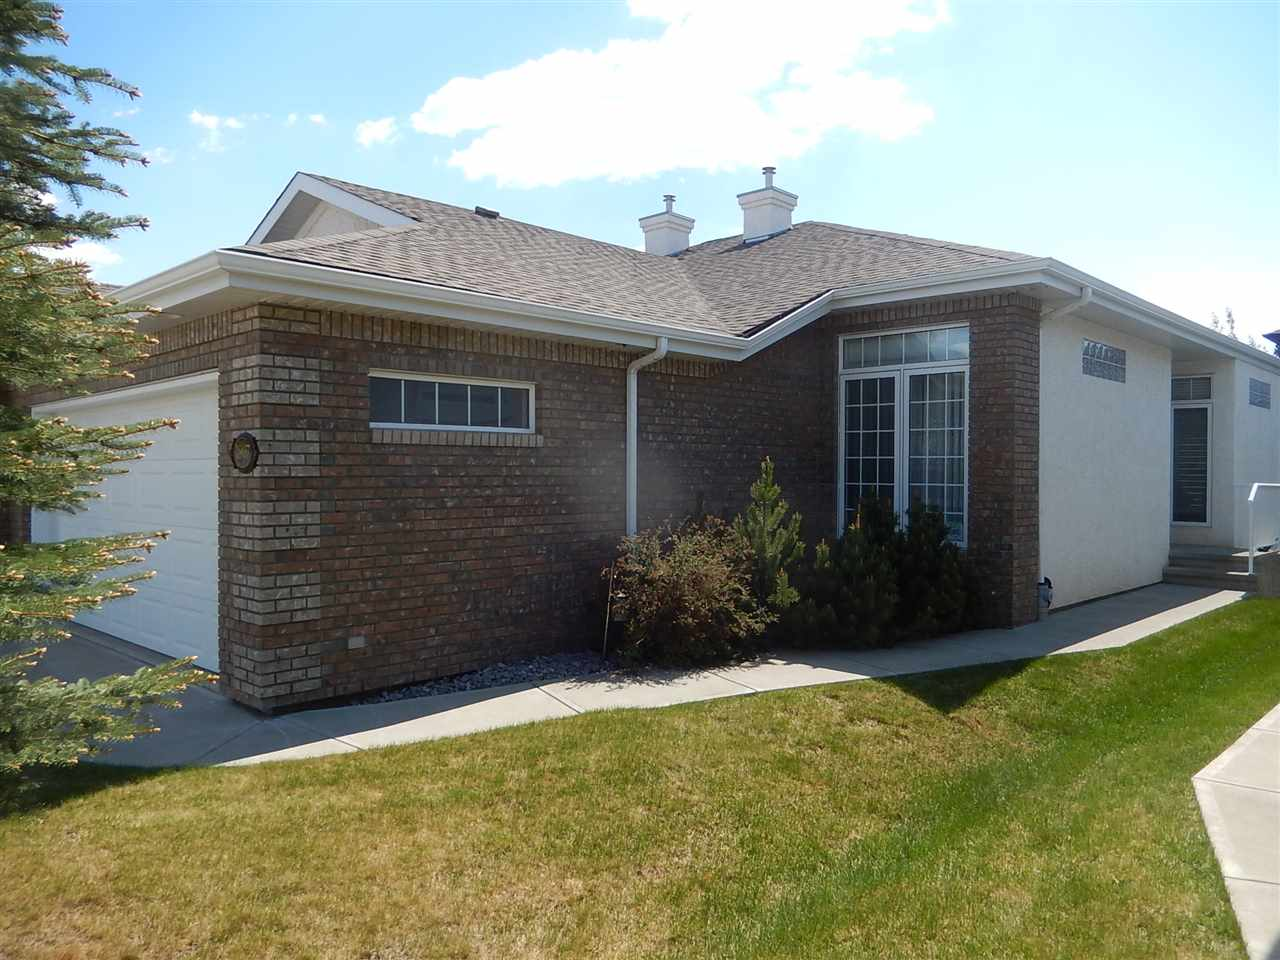 Main Photo: 1807 LATTA Place in Edmonton: Zone 14 House Half Duplex for sale : MLS(r) # E4070517